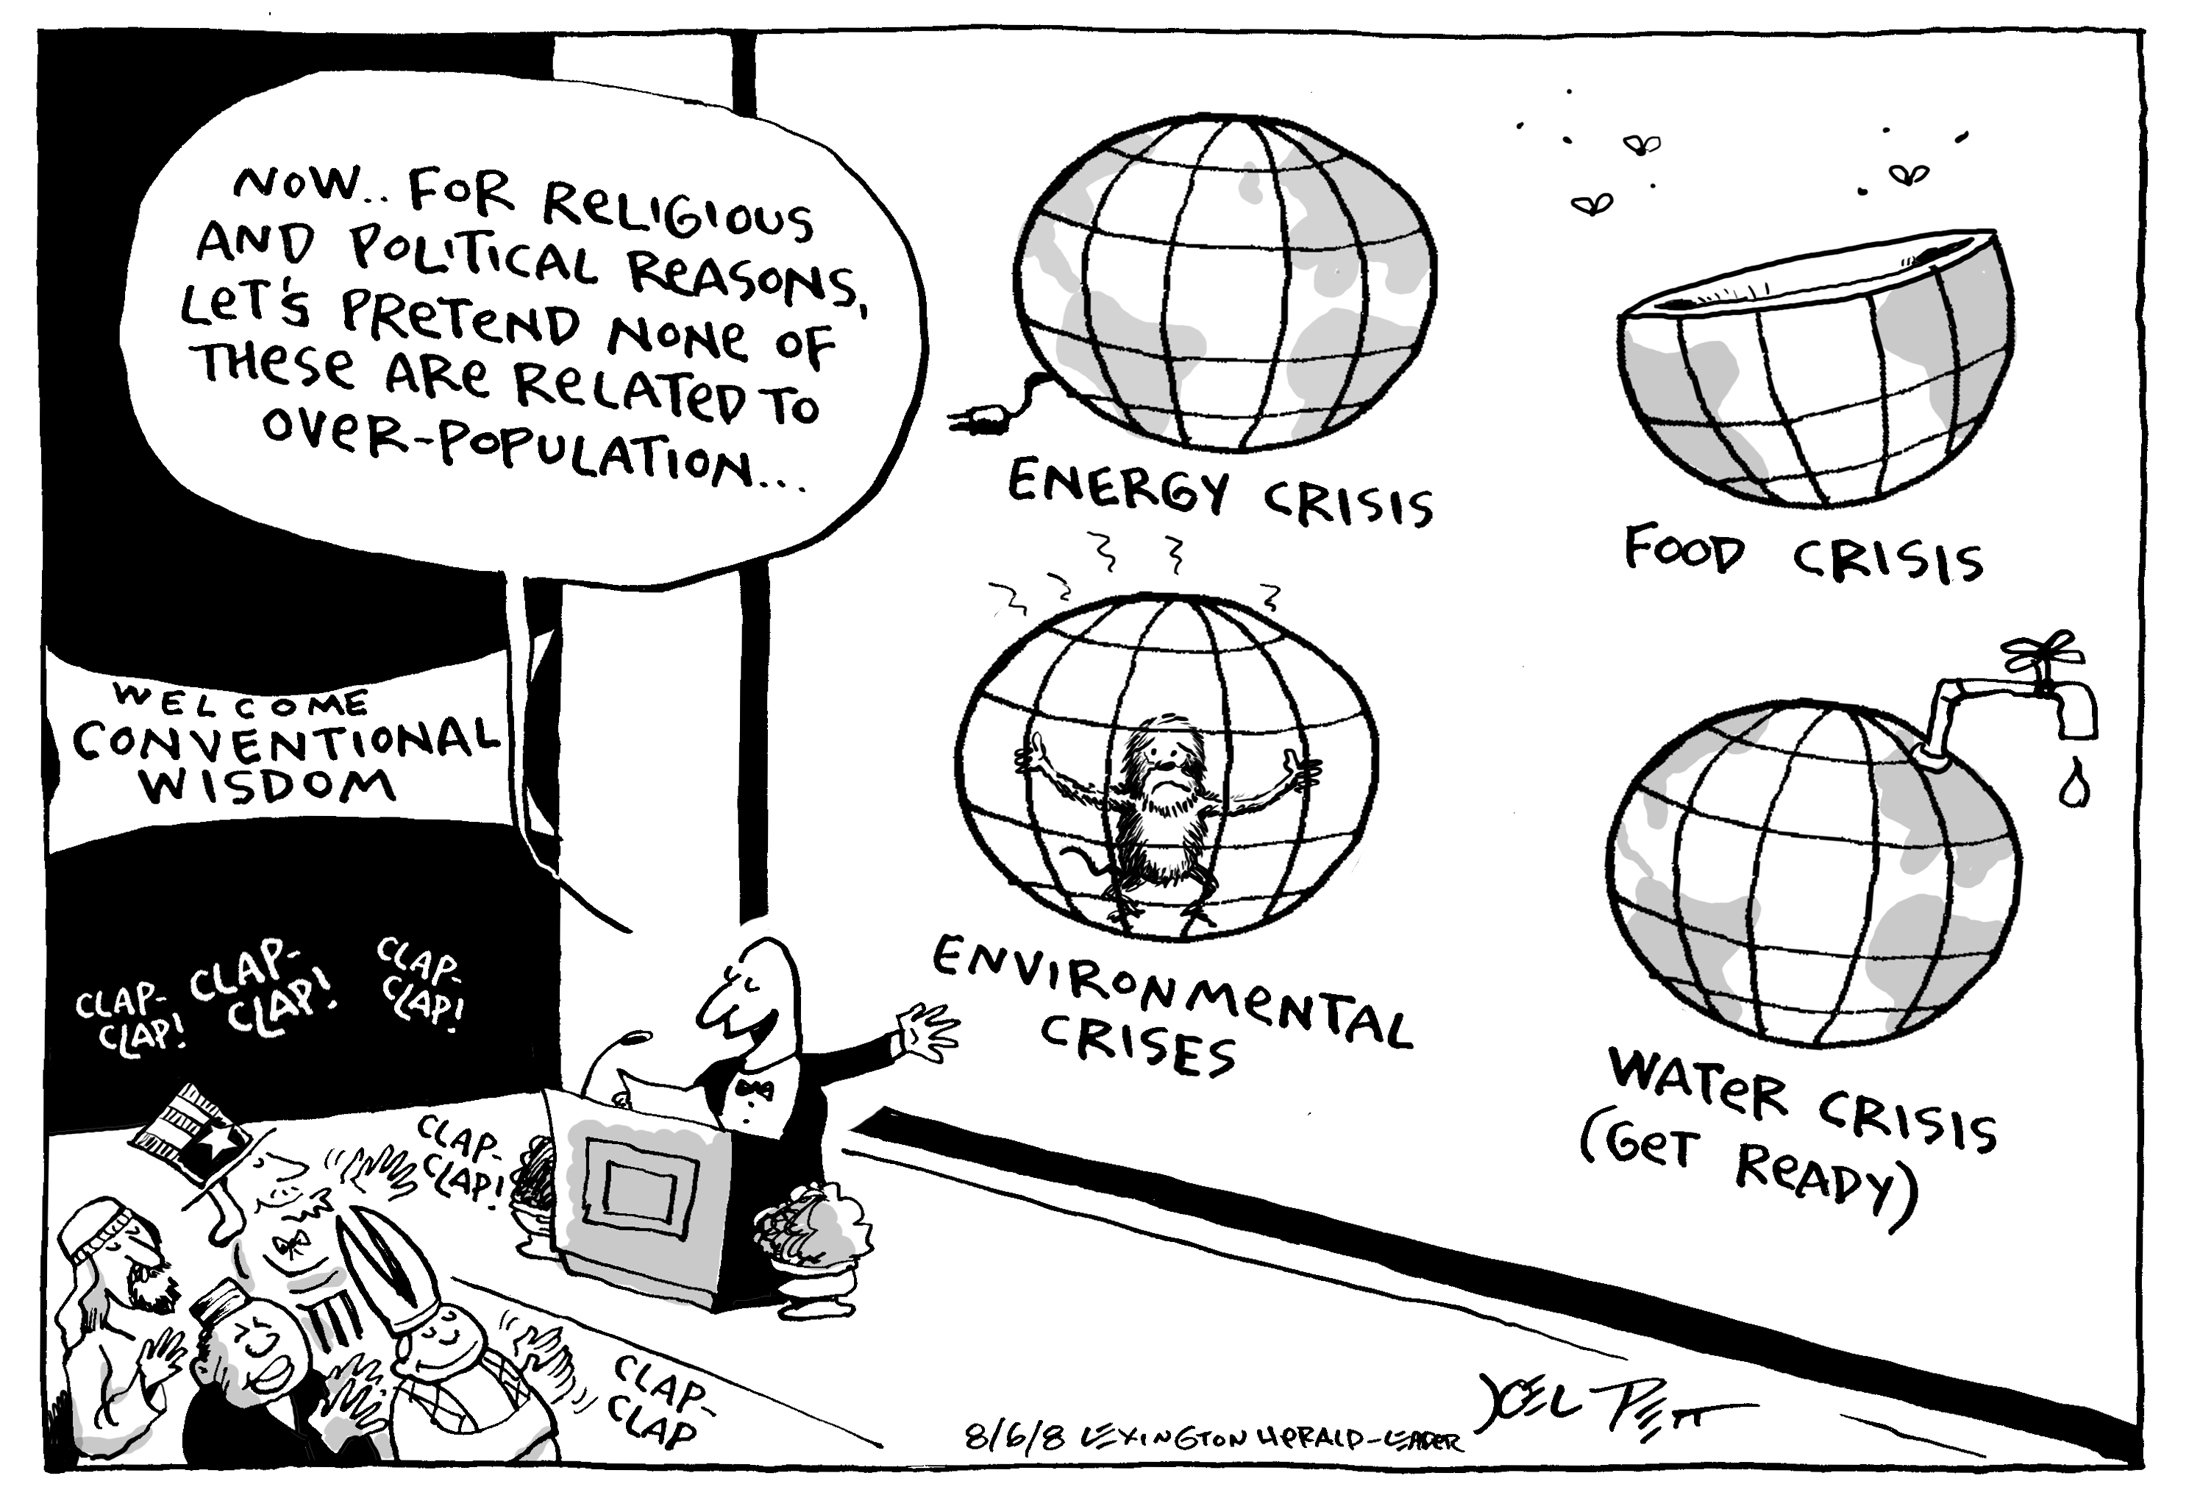 Threats in addition 0512 0706 0417 0364 further Cartoons furthermore Nightfall Dimming Of The Dream And Search For An Alternative in addition Oil Dependency. on natural resources political cartoon